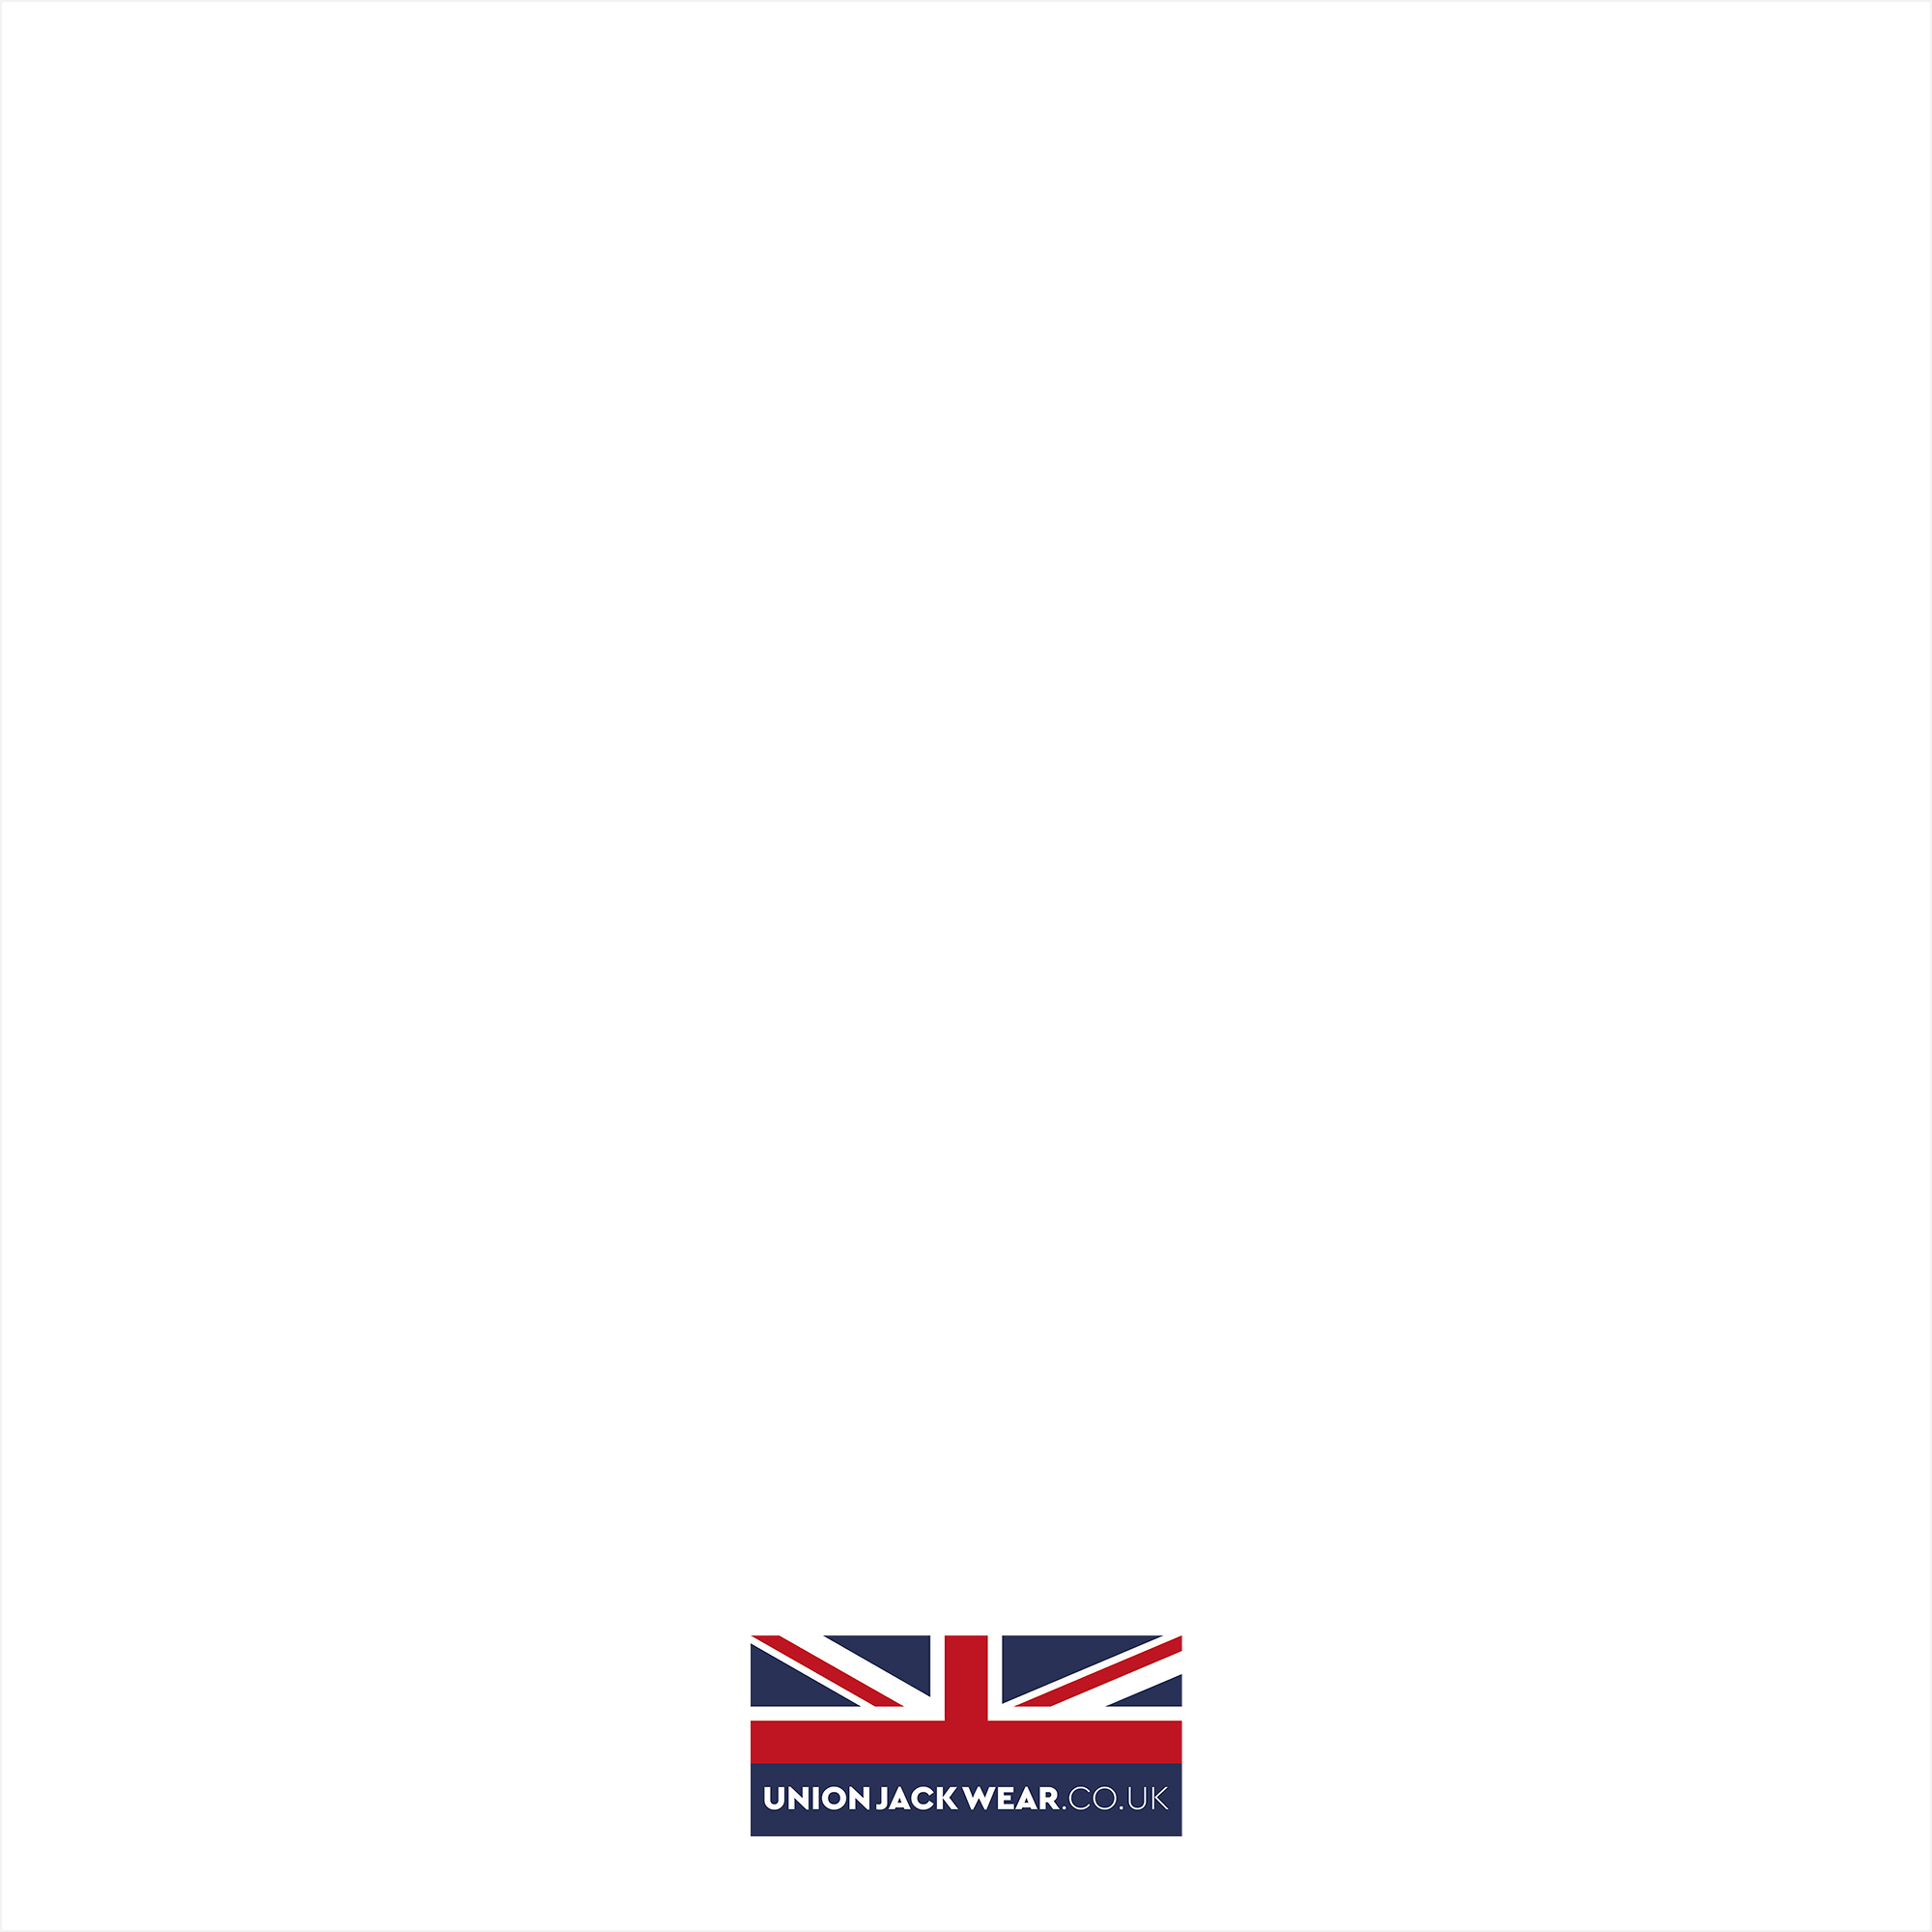 union jack wear union jack teddy bear christmas decorations pack of 3